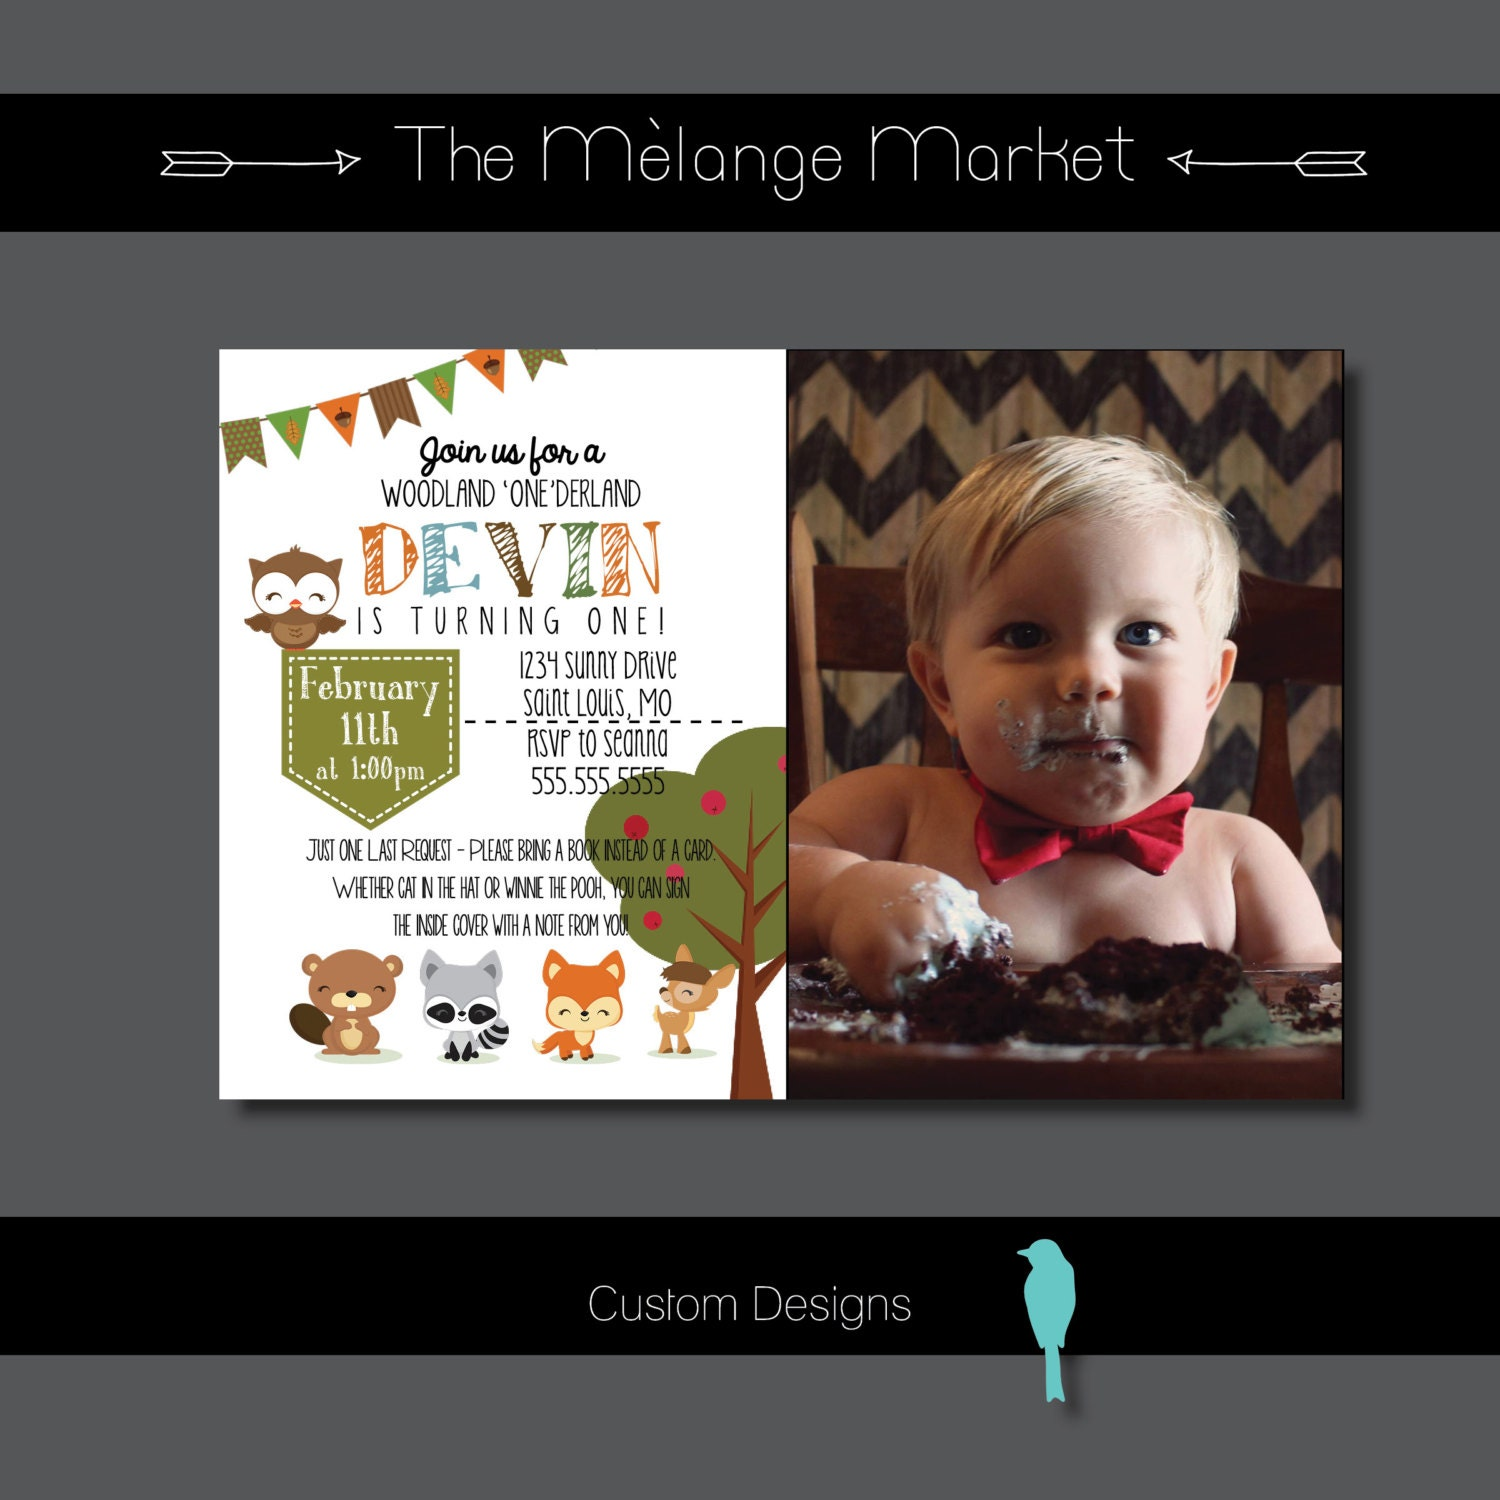 Customized birthday invitation first birthday woodland customized birthday invitation first birthday woodland creatures animals toddler personalized filmwisefo